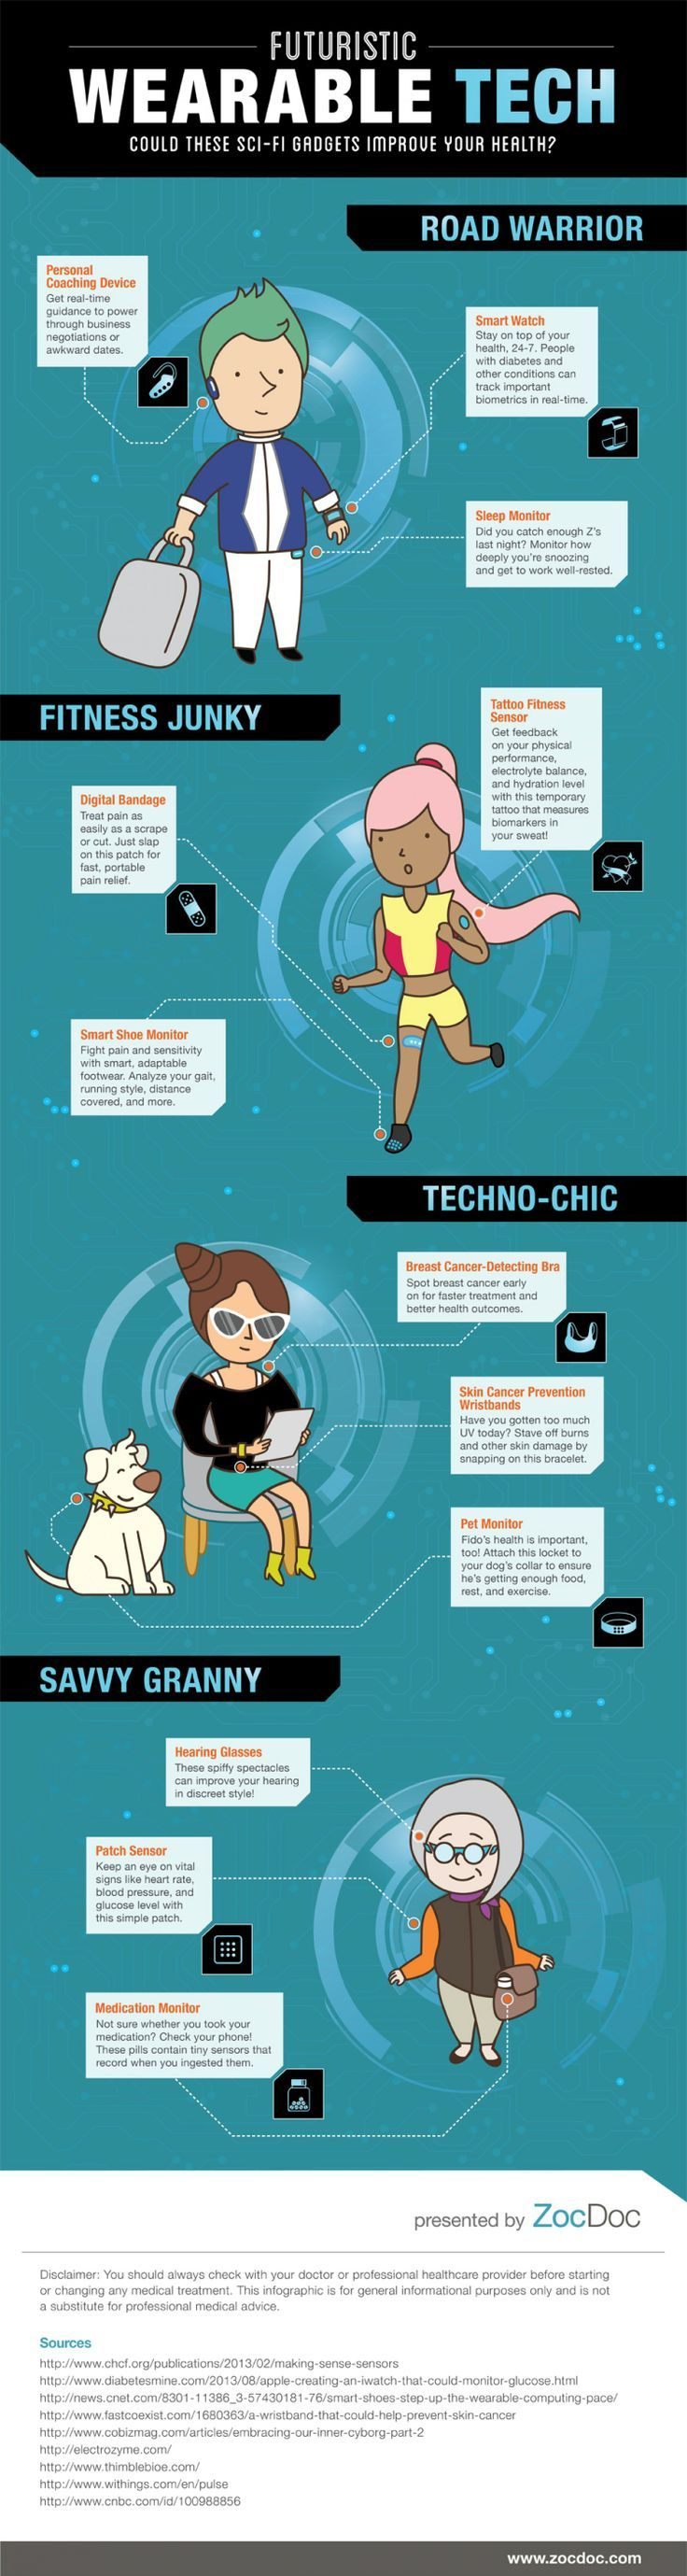 infografia_tecnologia_wearable